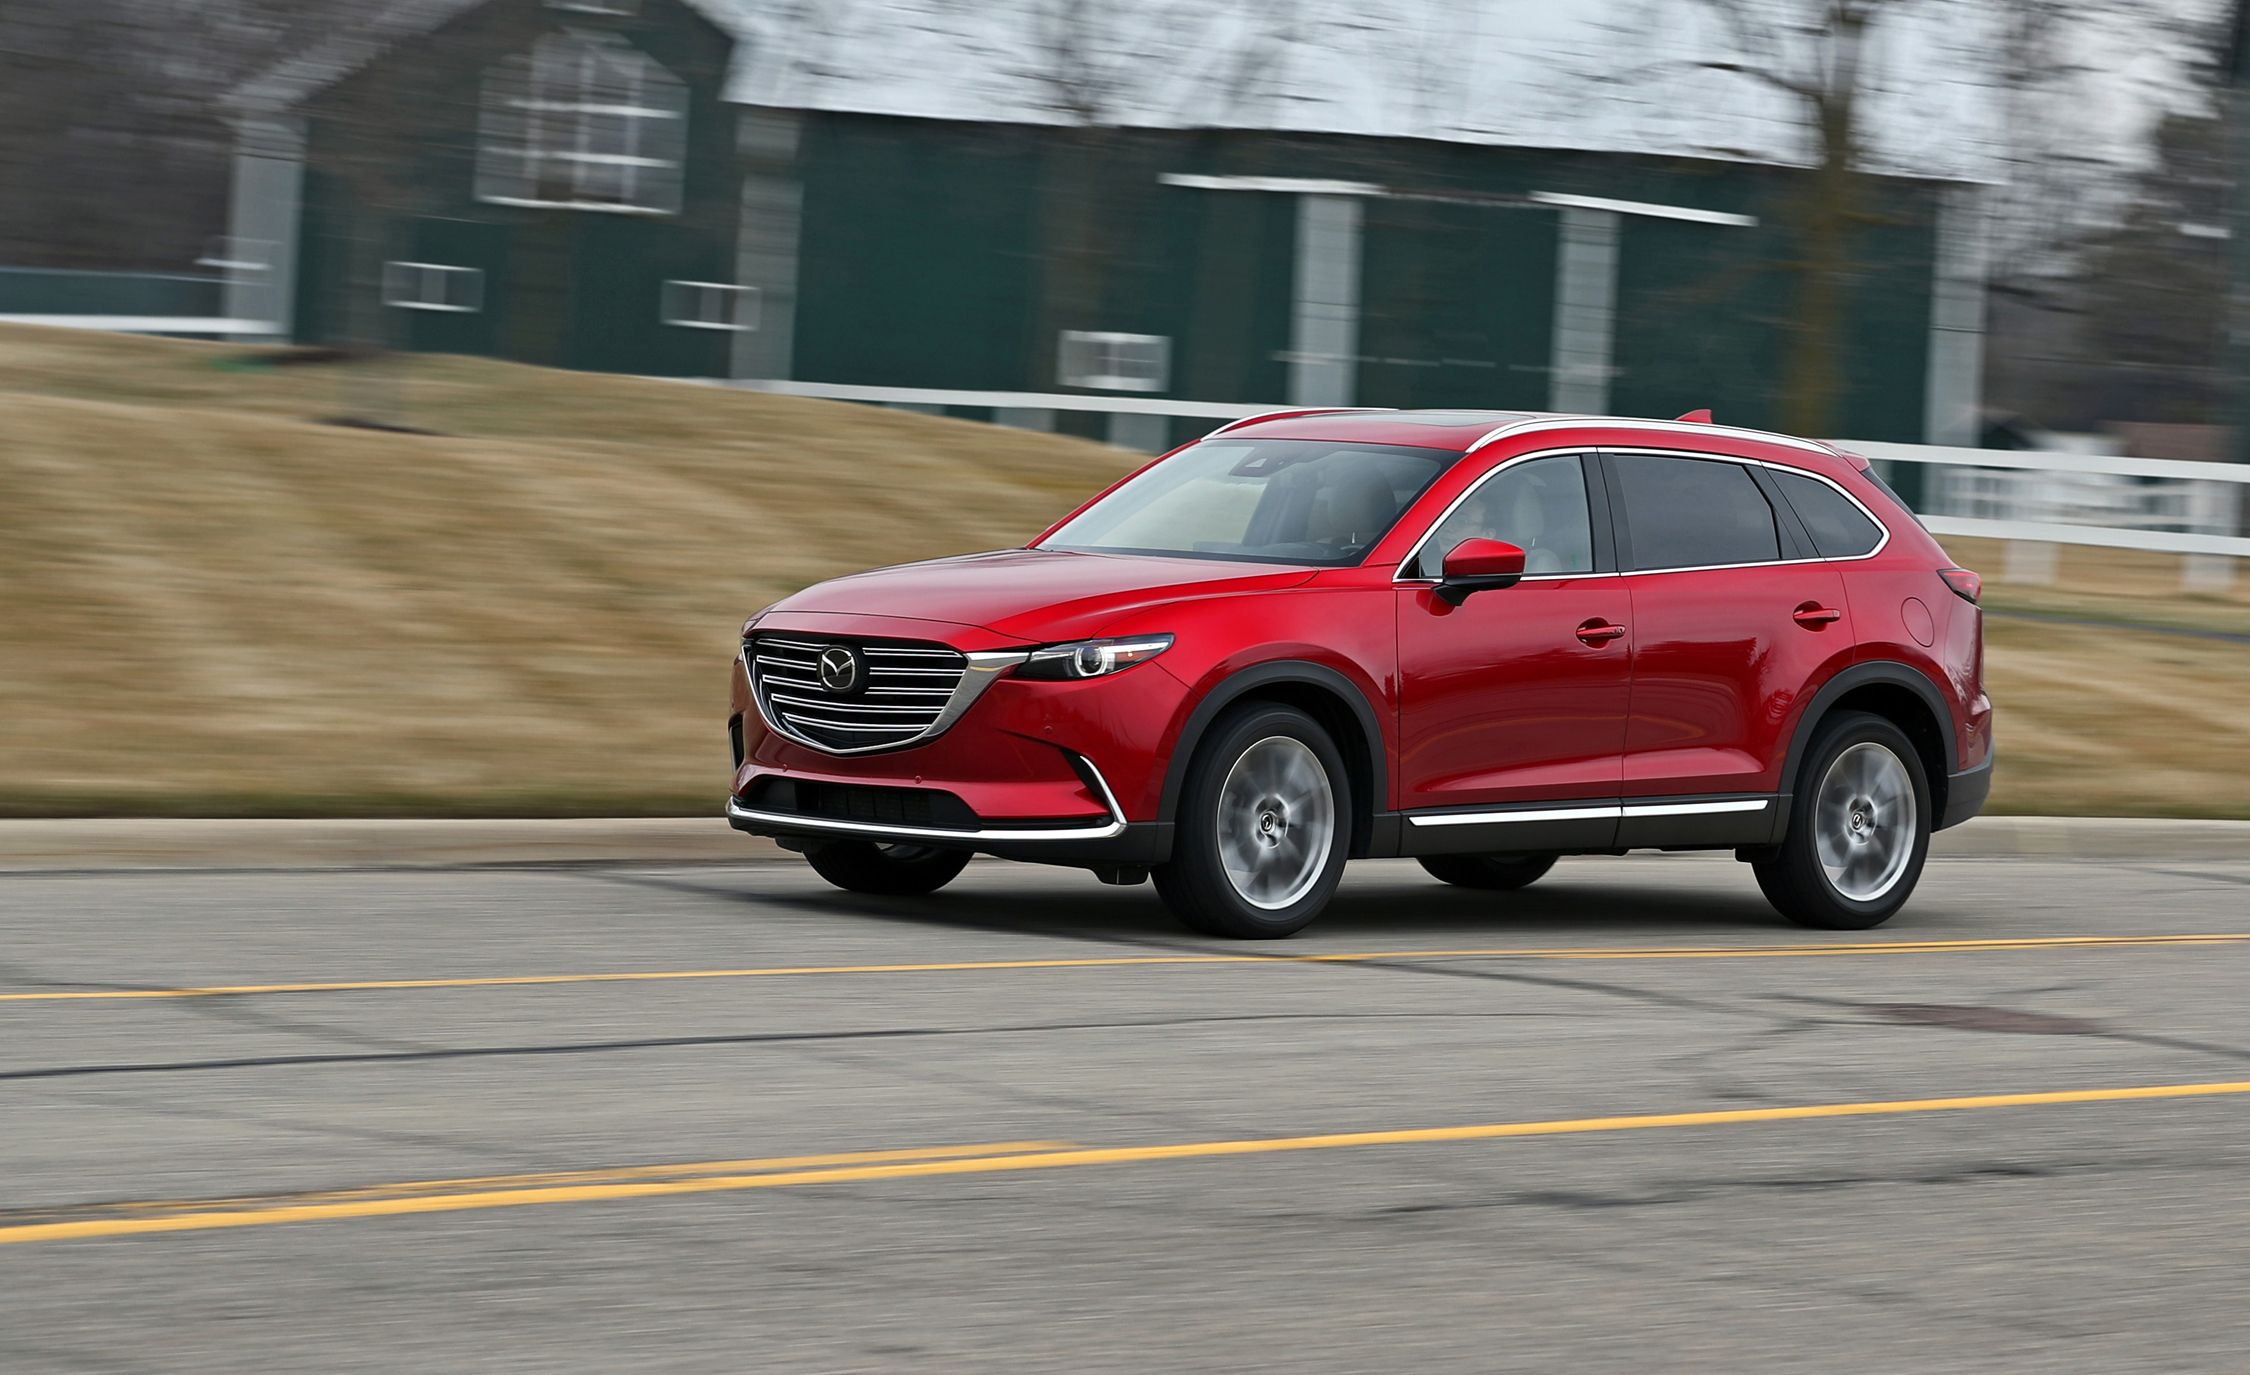 2018 mazda cx 9 awd test updated so we d like it more review car and driver. Black Bedroom Furniture Sets. Home Design Ideas